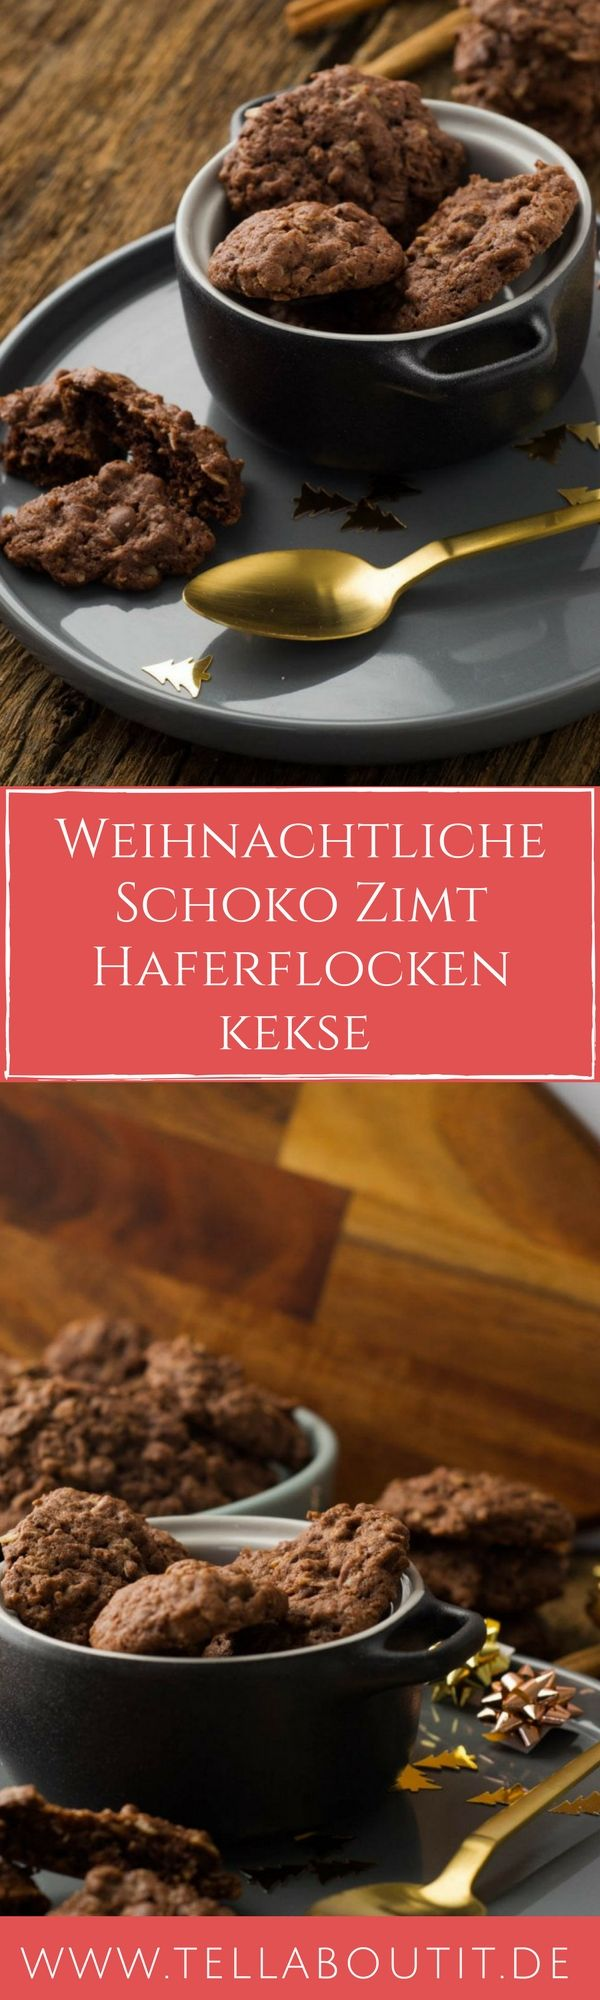 schoko haferflockenkekse mit zimt rezept kochen schoko pl tzchen und zimt. Black Bedroom Furniture Sets. Home Design Ideas